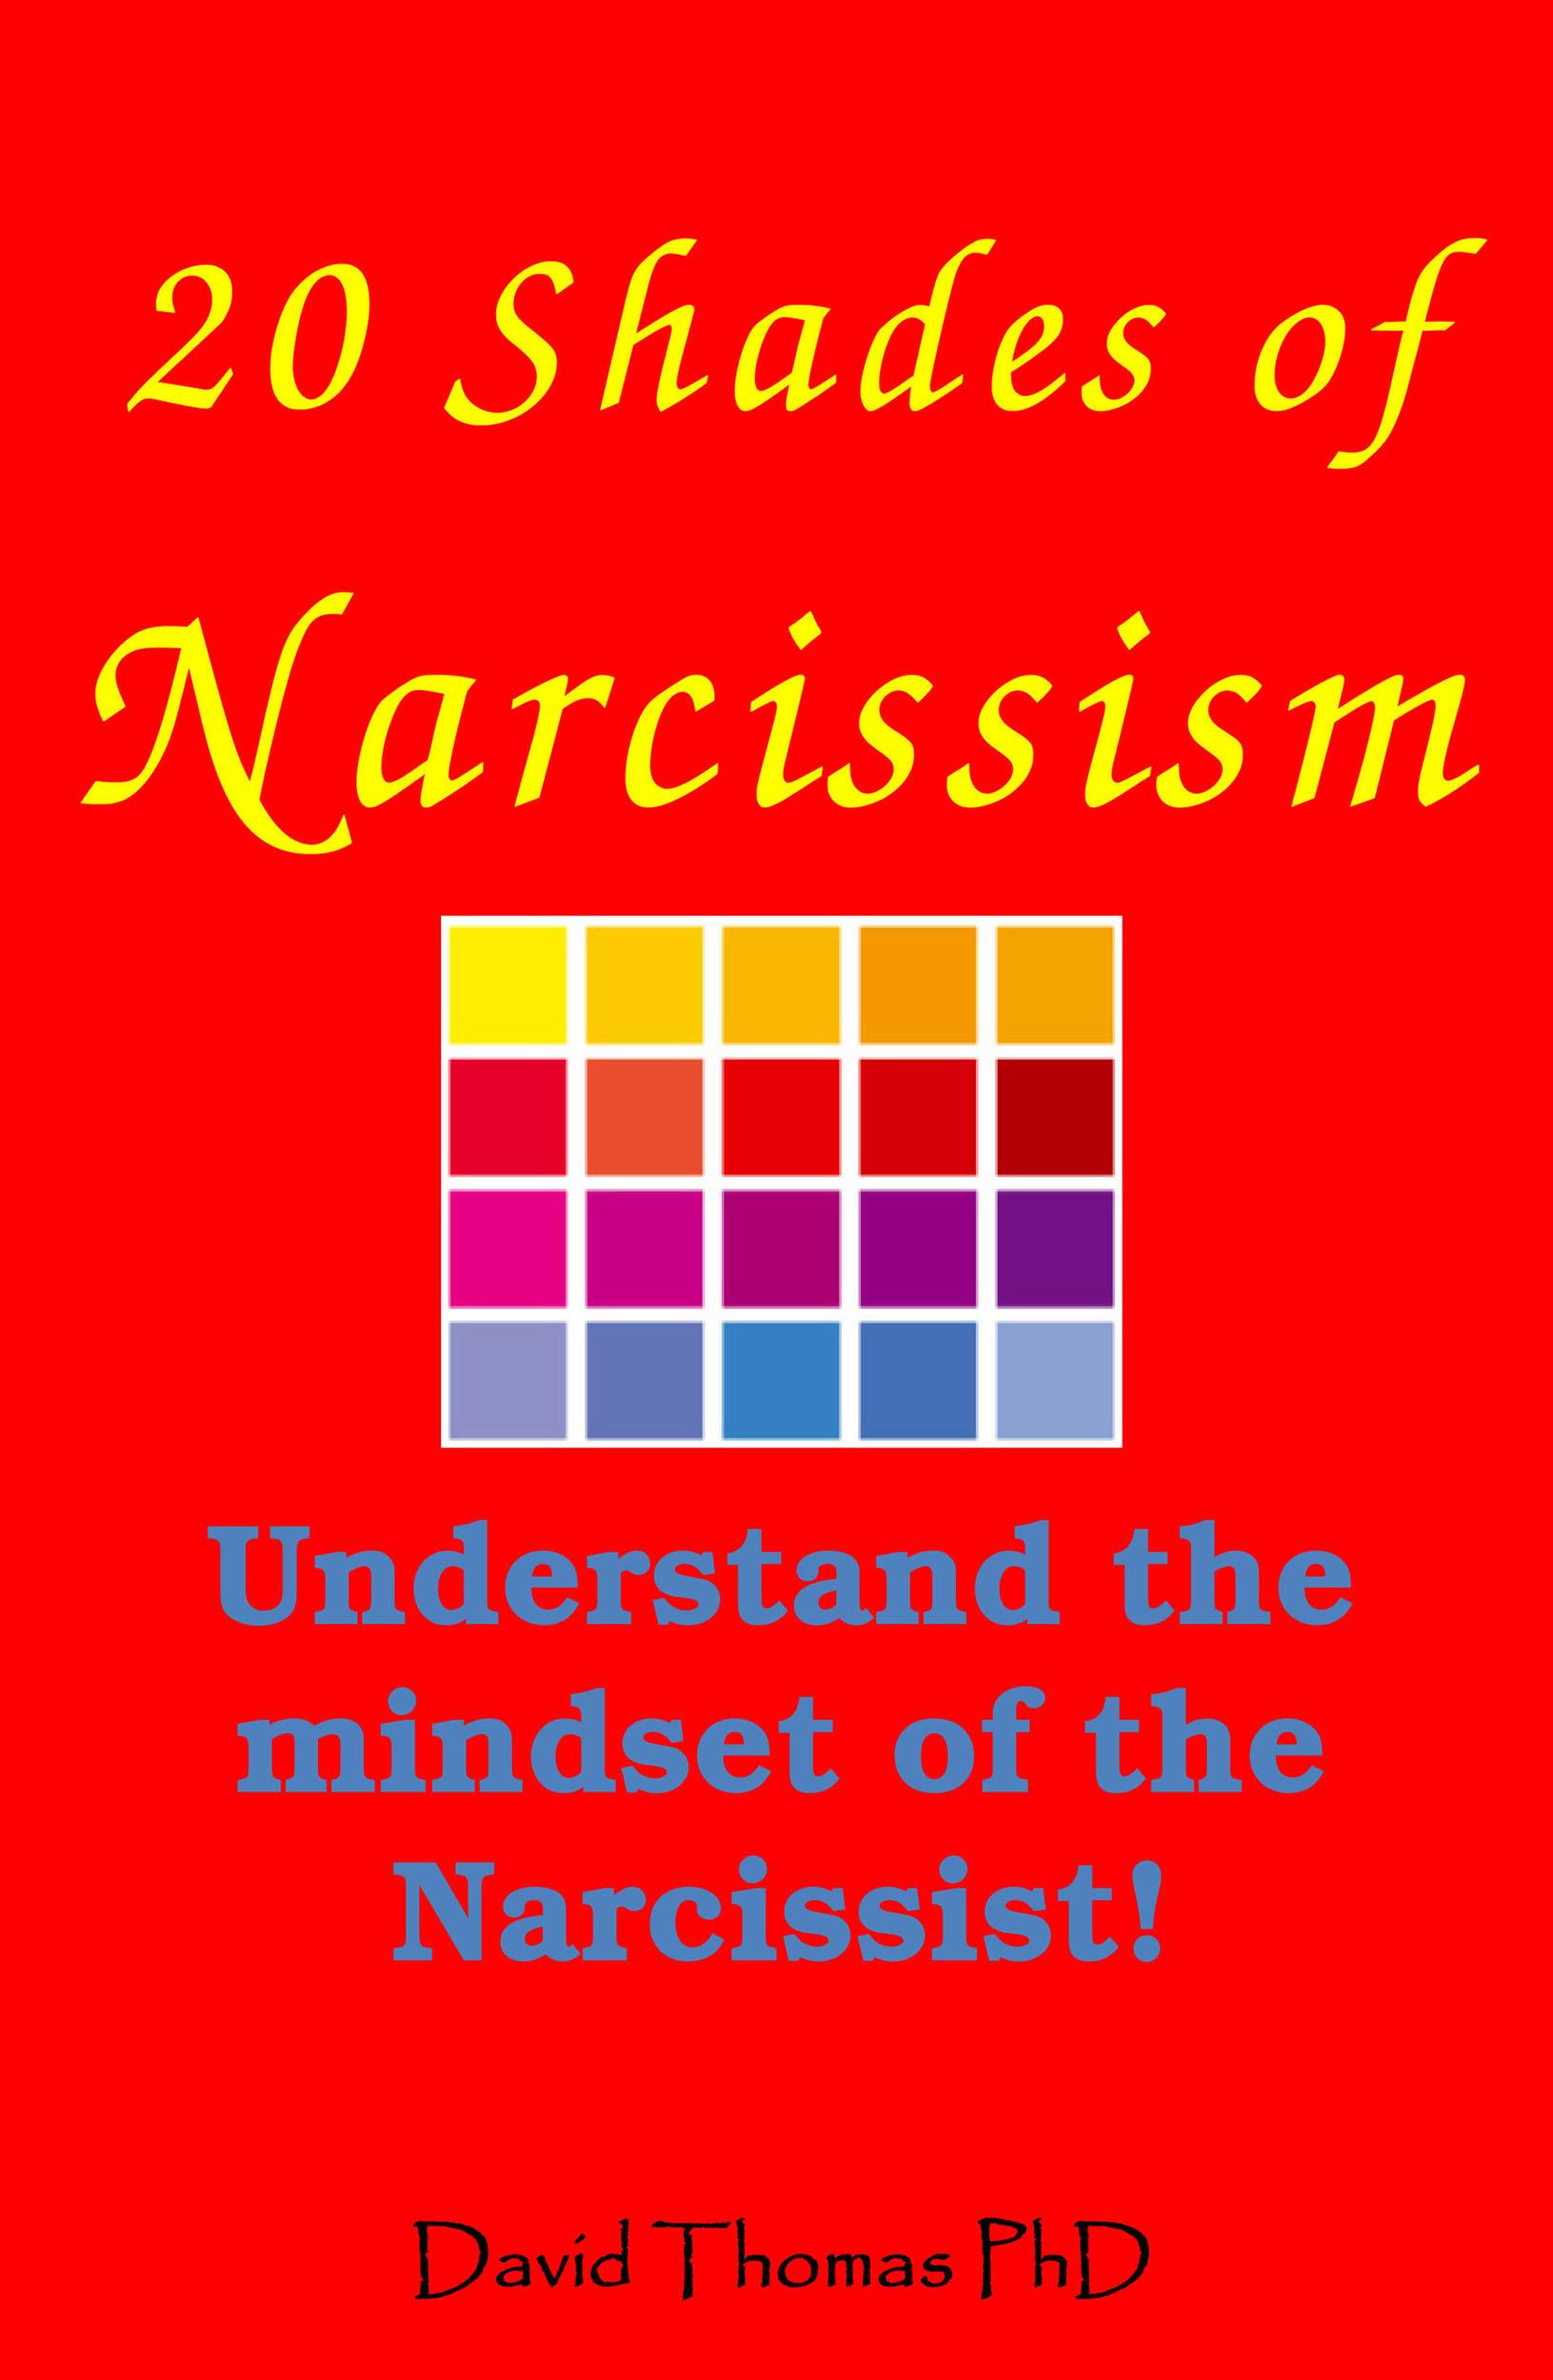 summary of the narcissism and moral